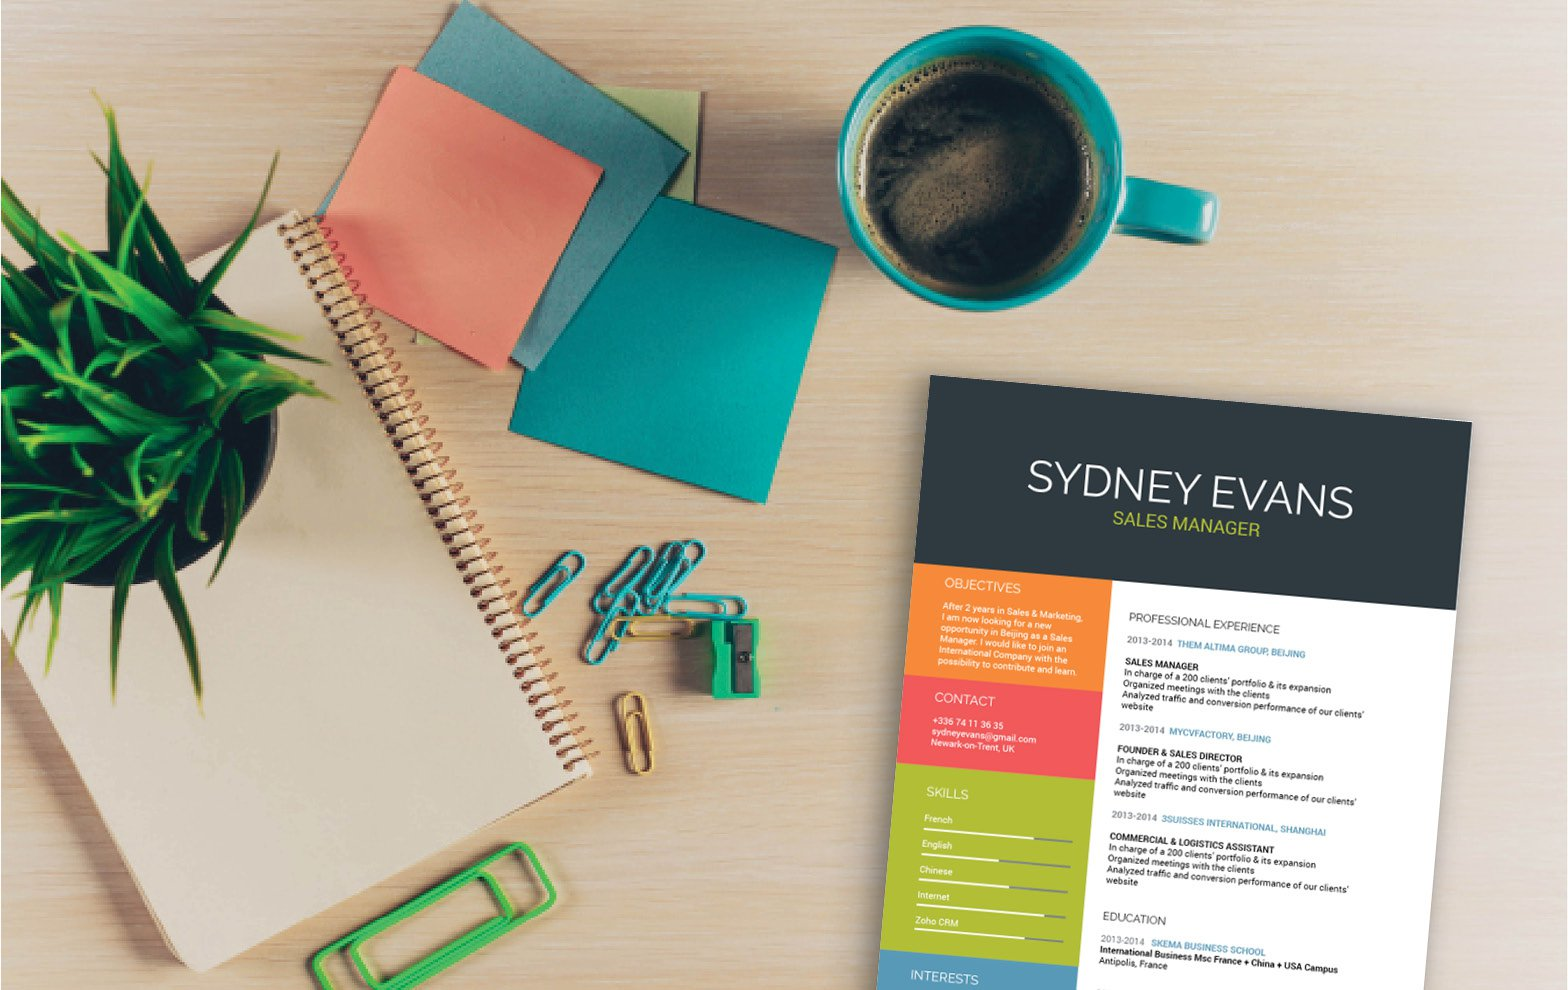 The colors and styles used in this template make for clean and great resume